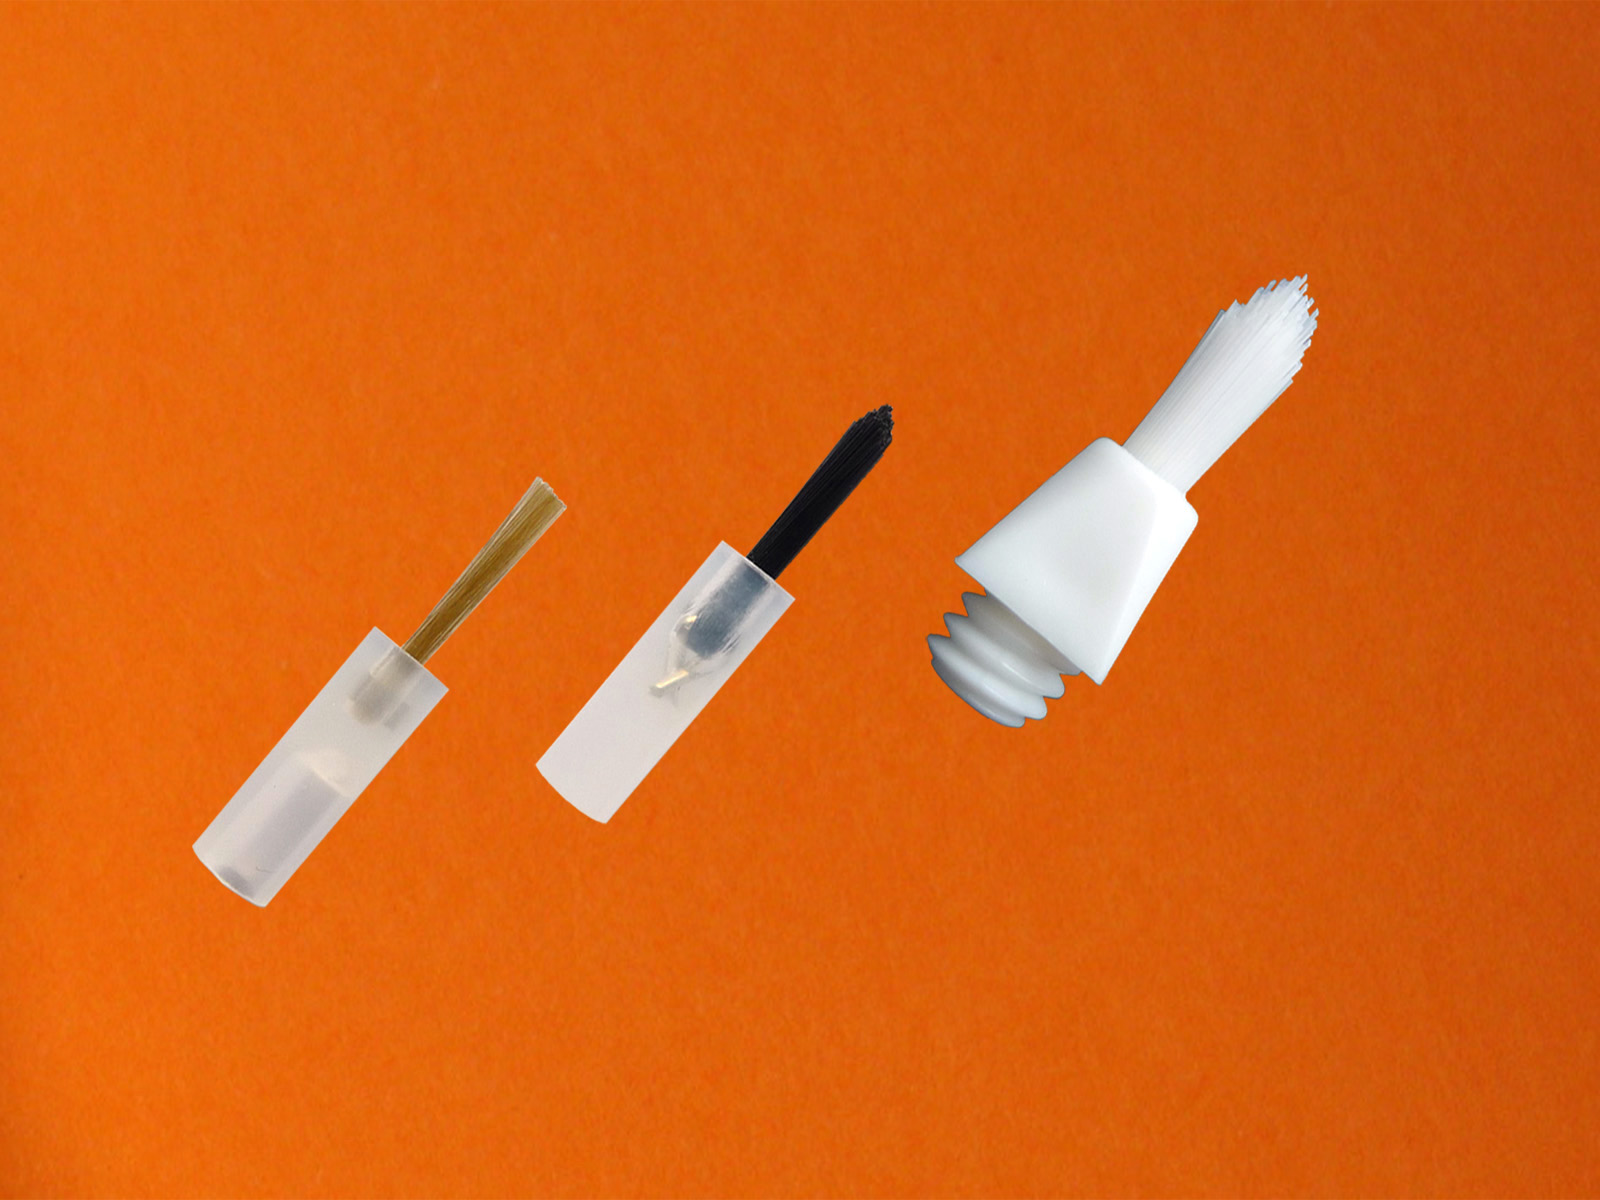 Brushes with different dimensions for dental holders.